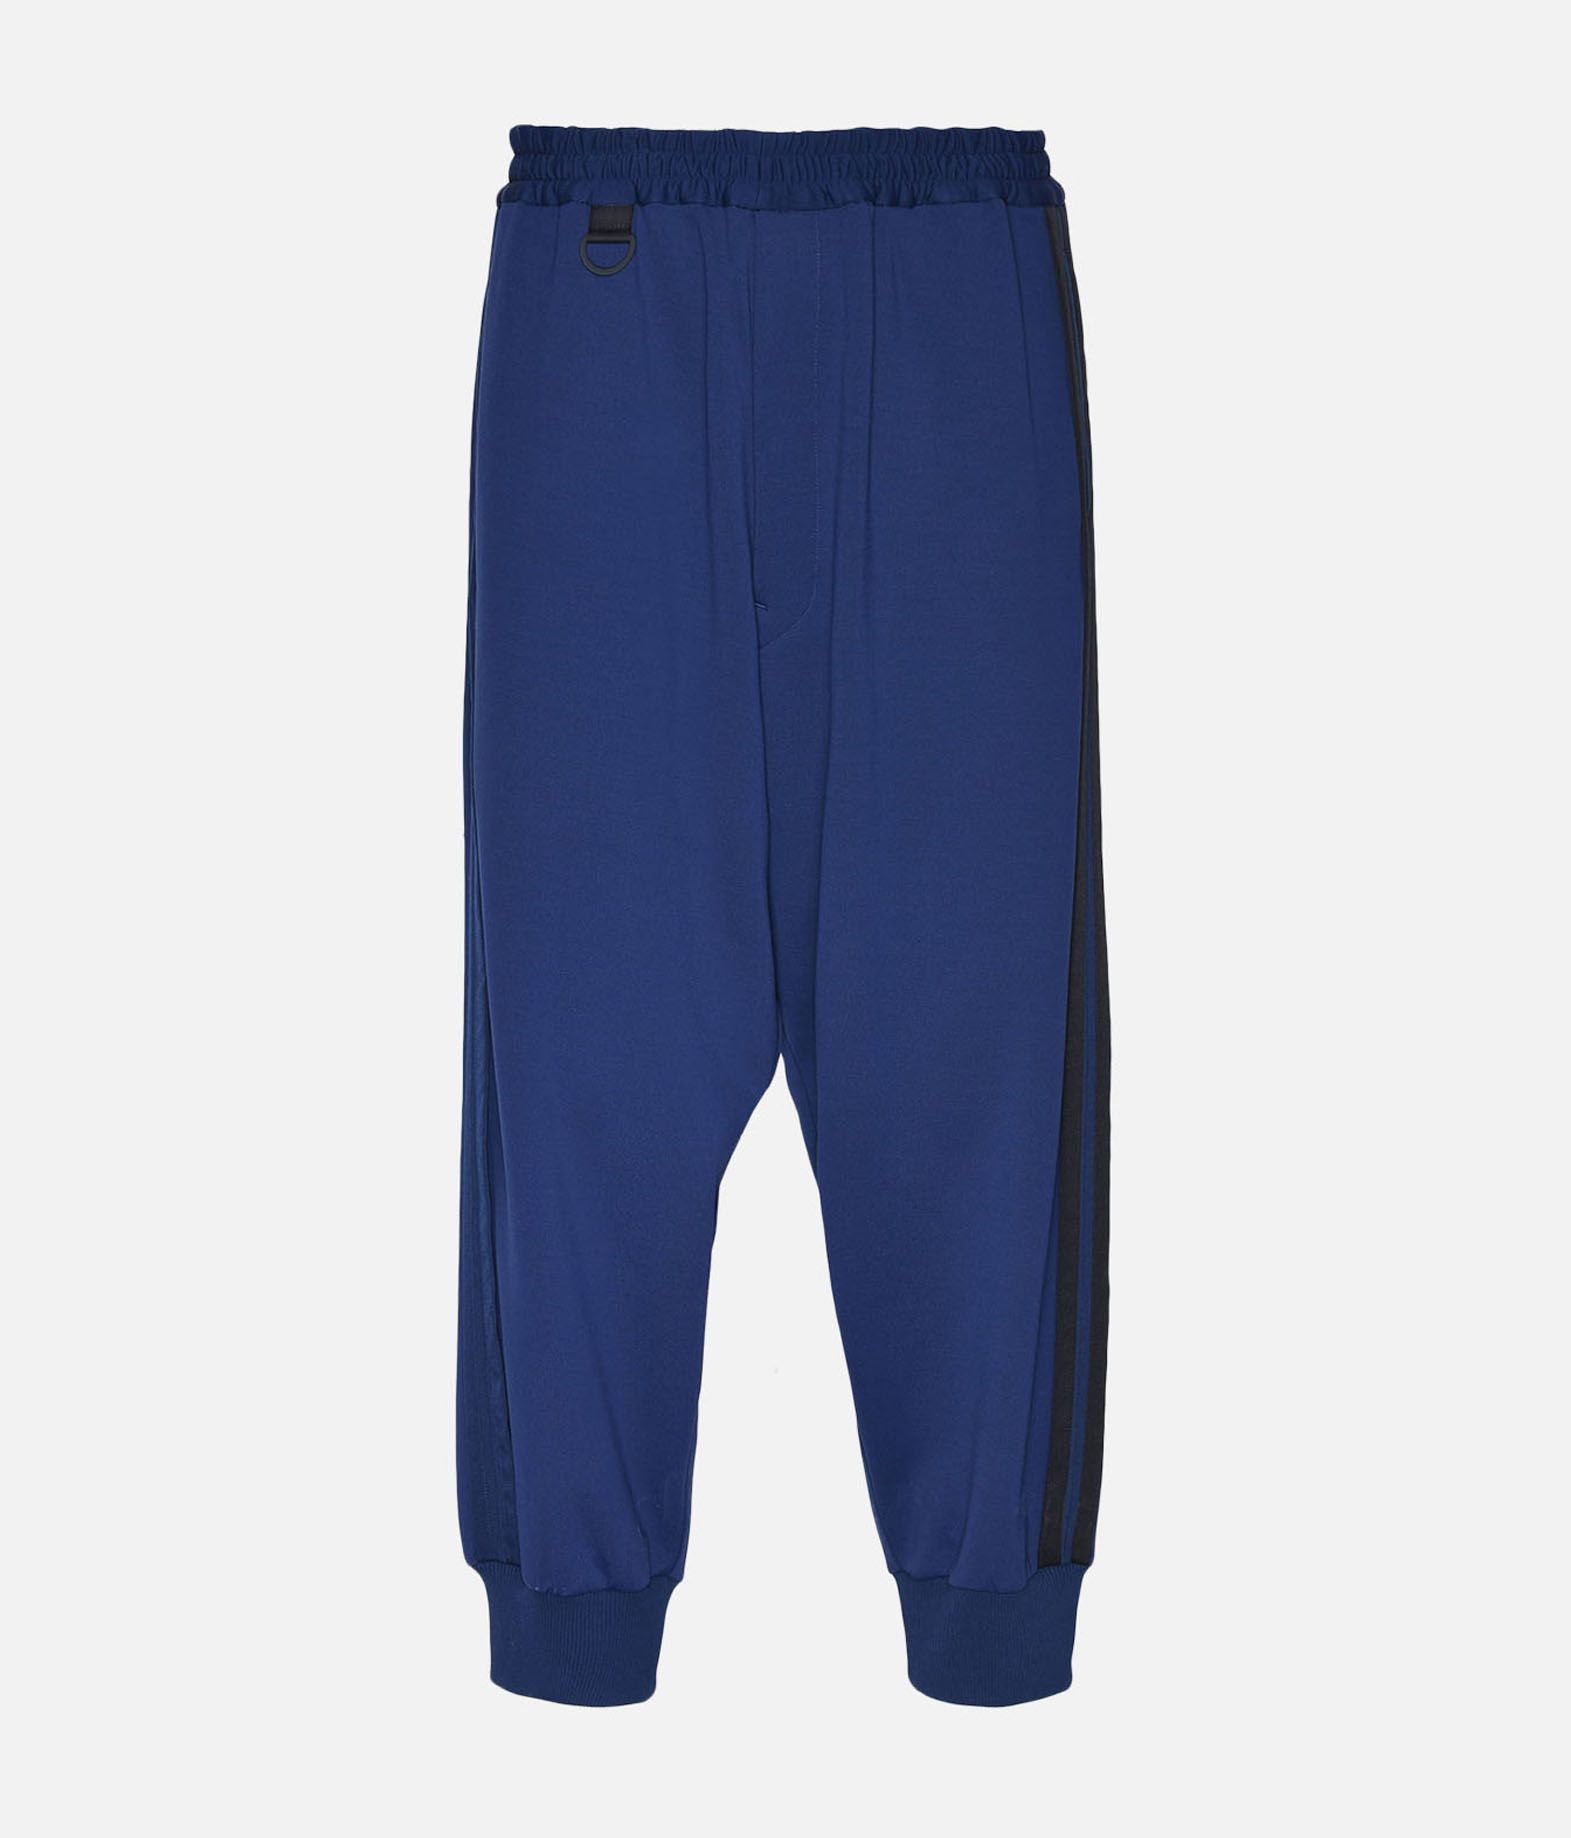 Y-3 Y-3 3-Stripes Selvedge Matte Track Pants Track pant Man f